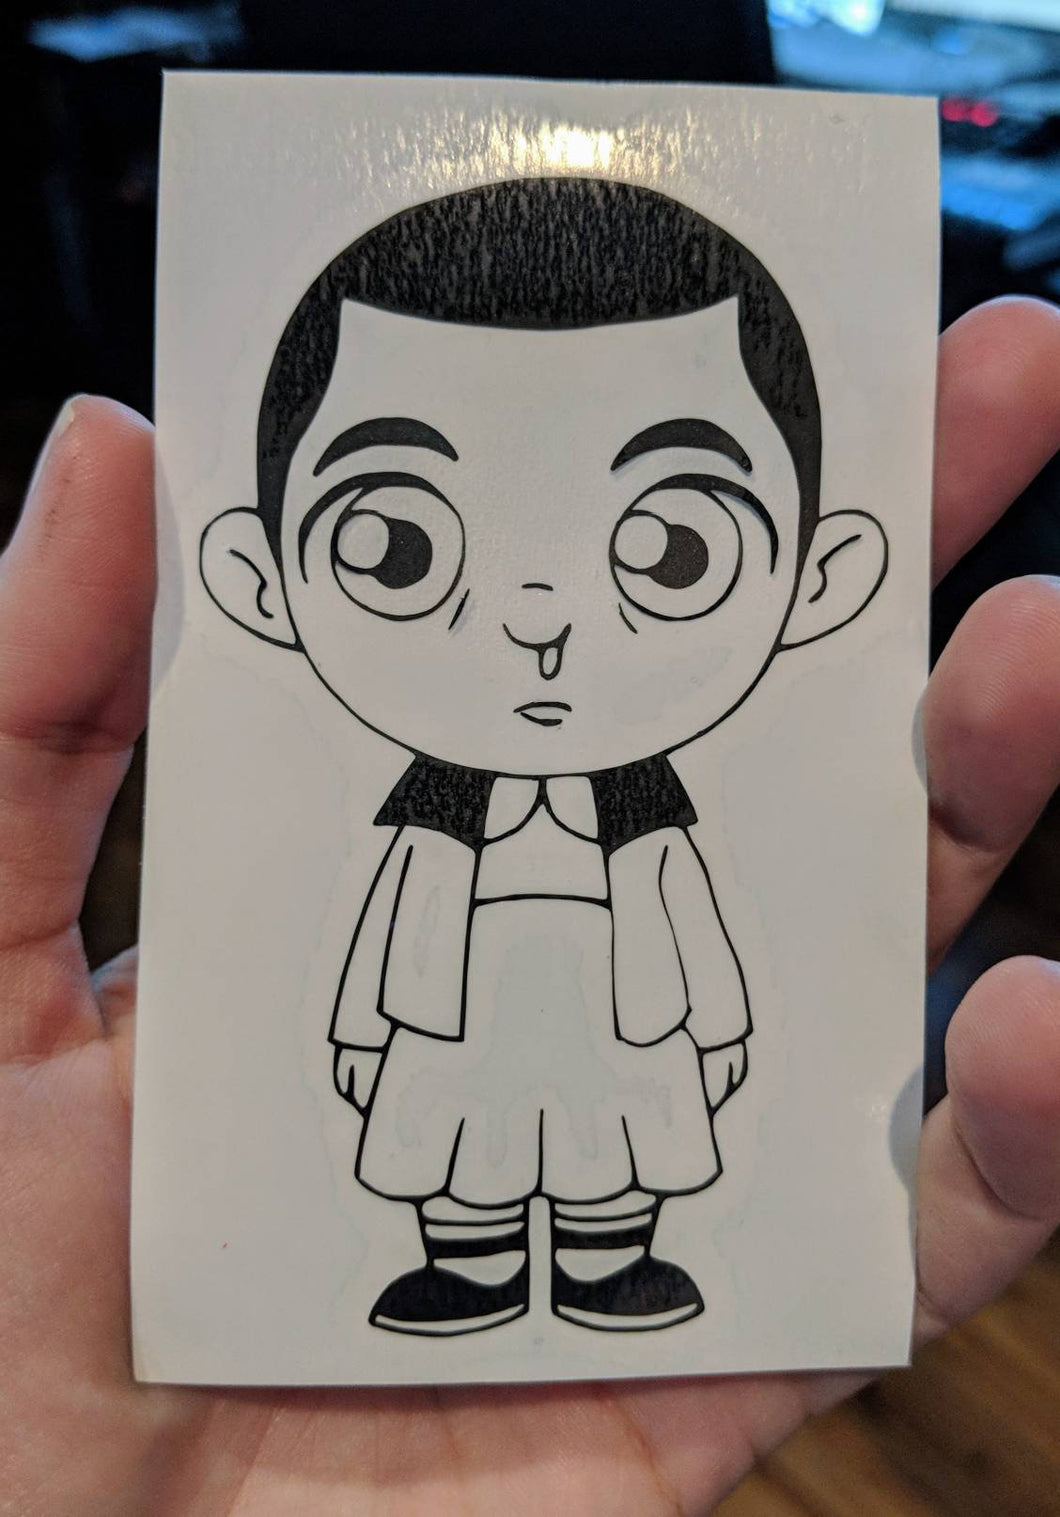 Stranger Things Inspired Chibi Style Eleven Vinyl Decal for Car, Home, Laptops, Yeti